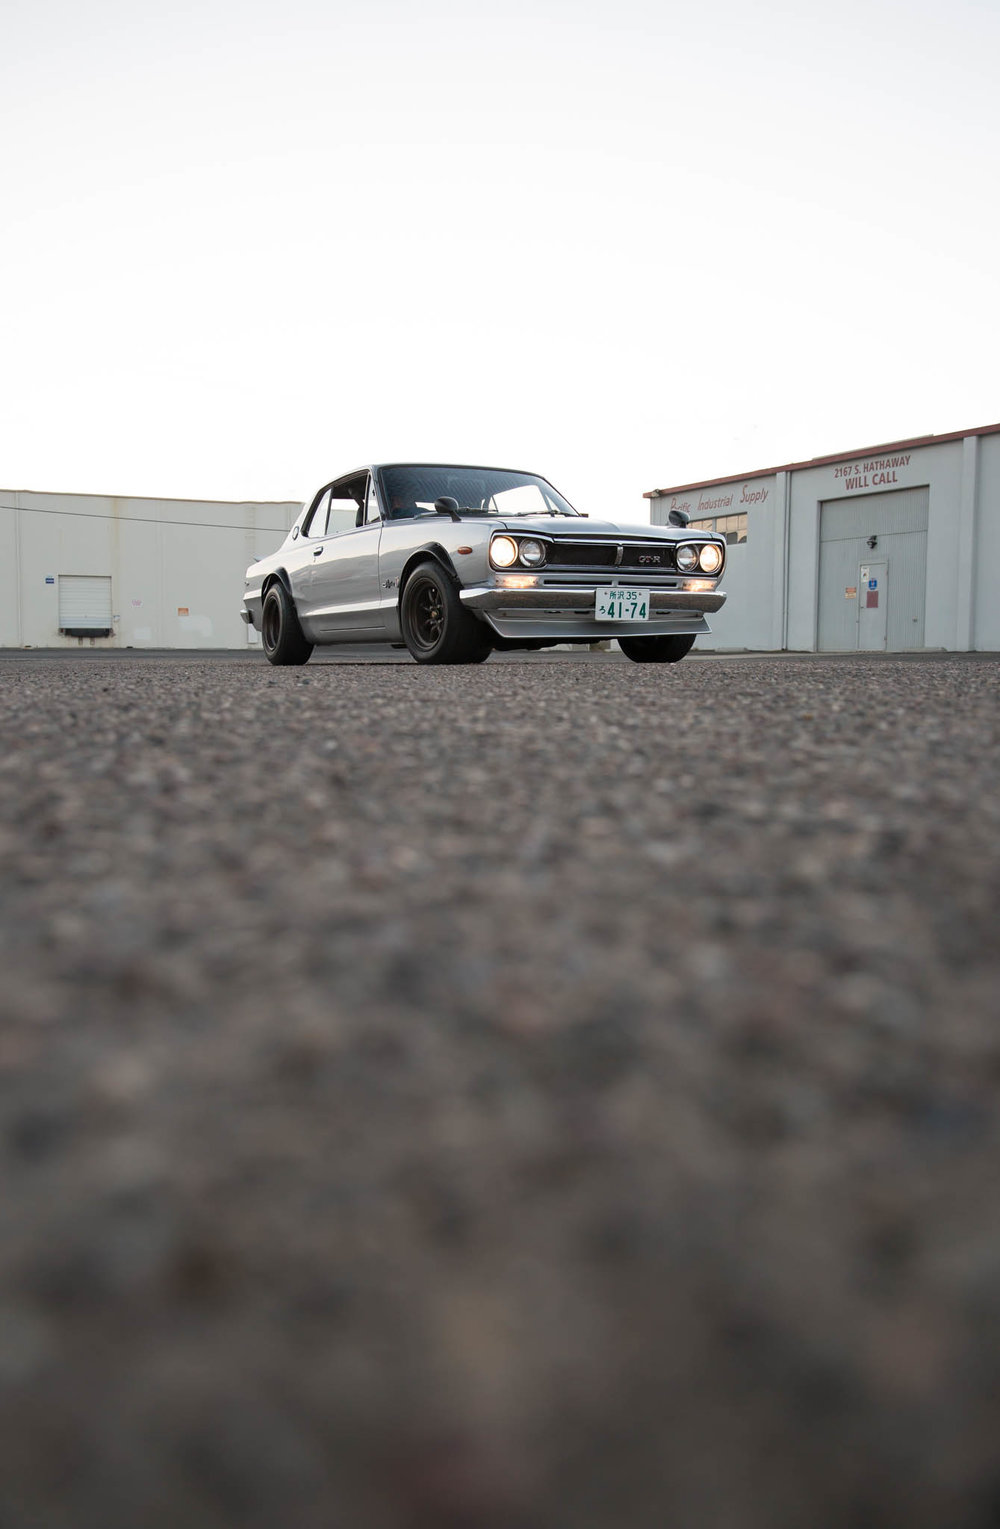 Stay_Driven_Skyline_Syndicate_Shoot_1-121.jpg